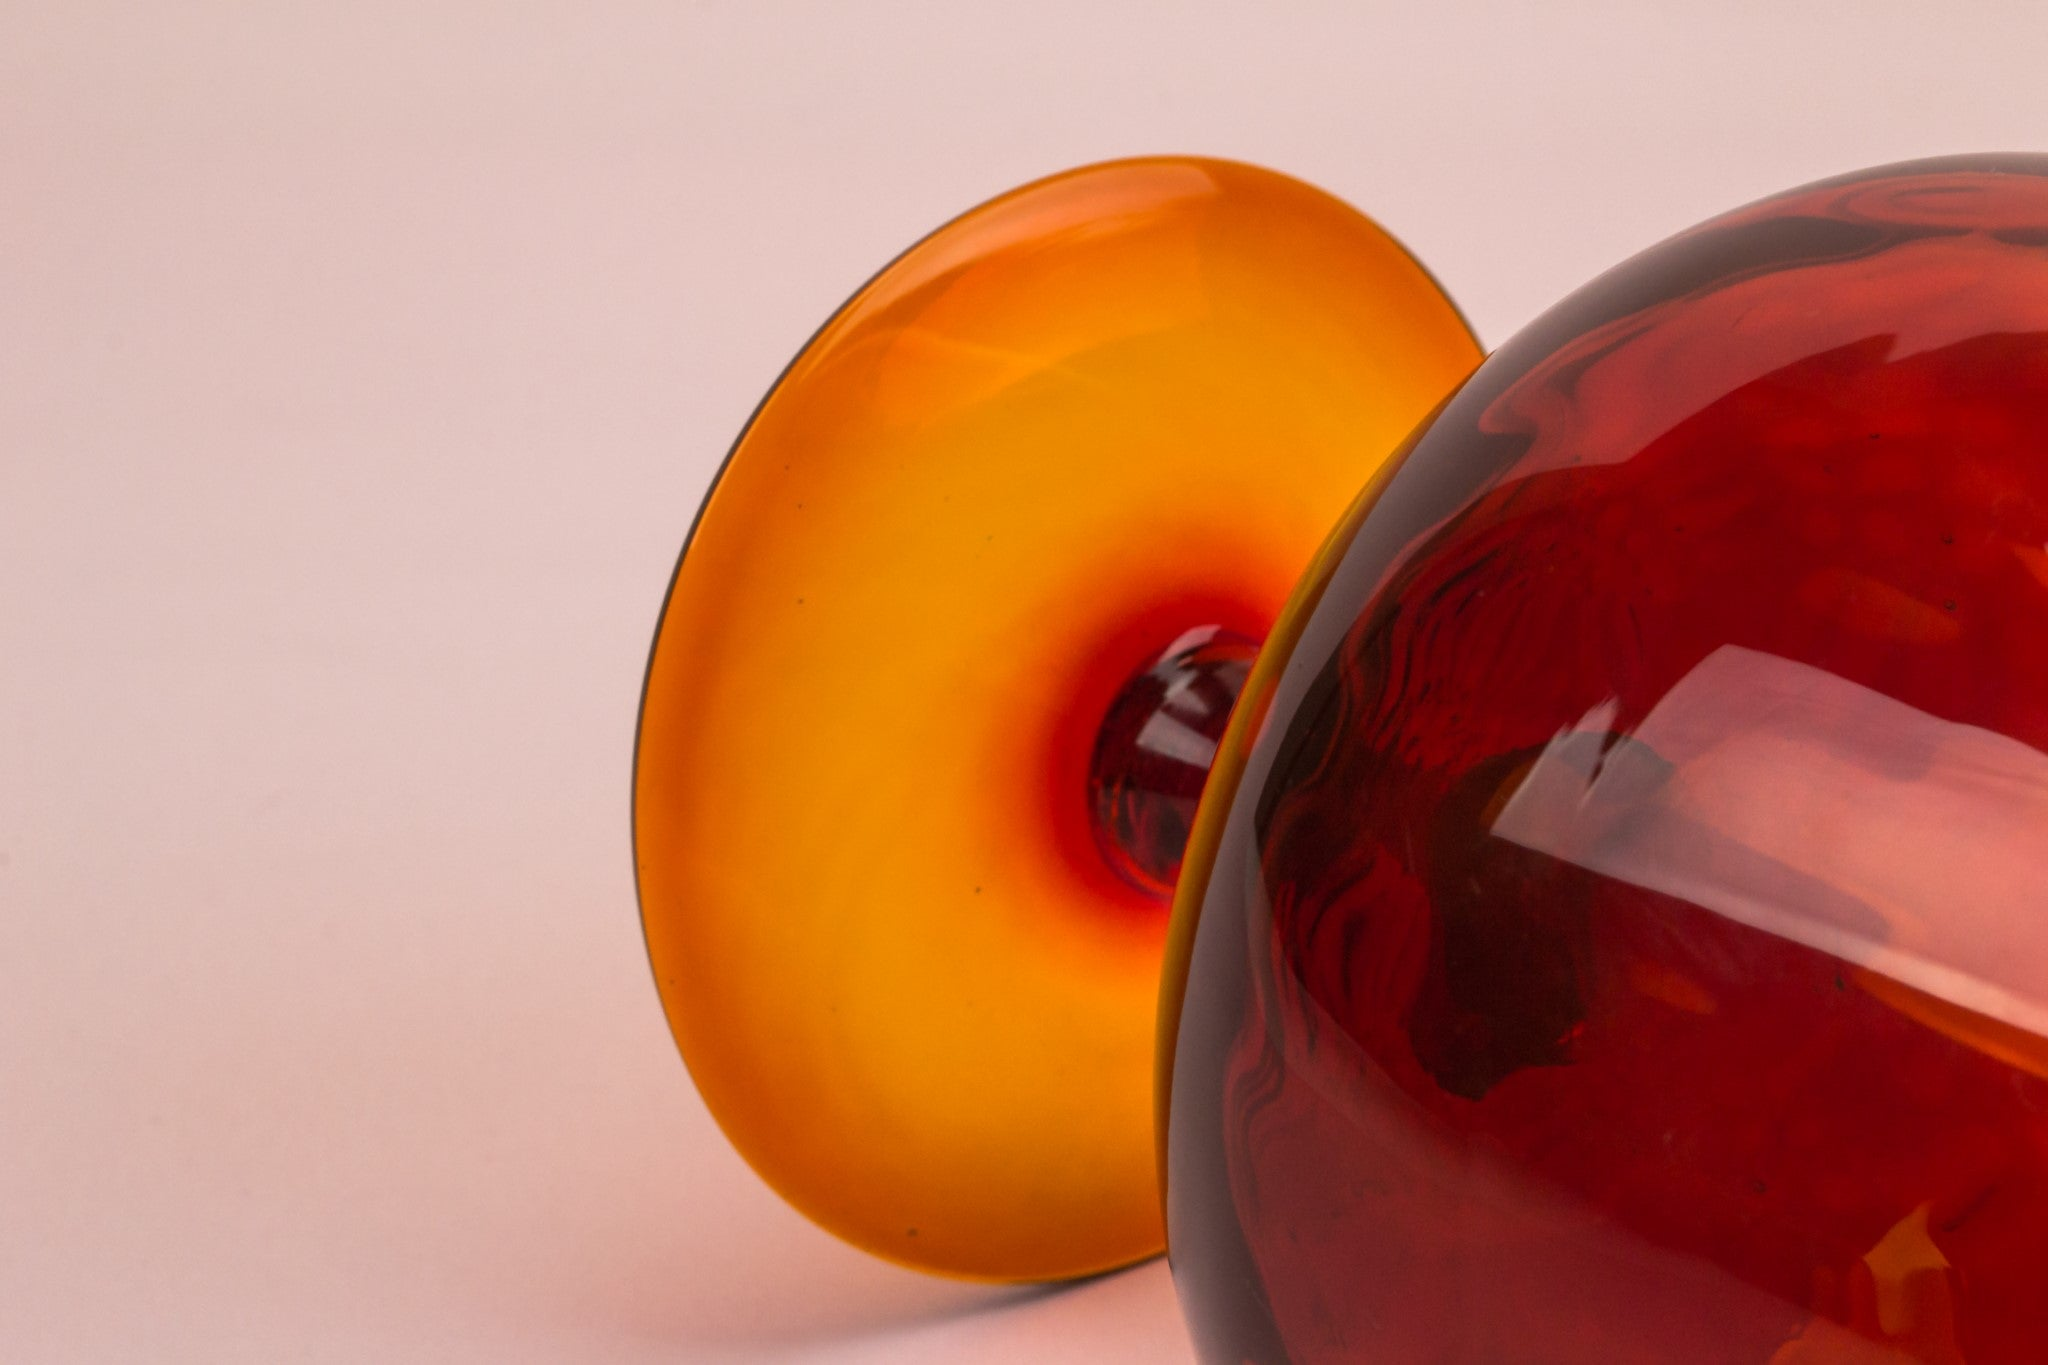 Orange glass vase